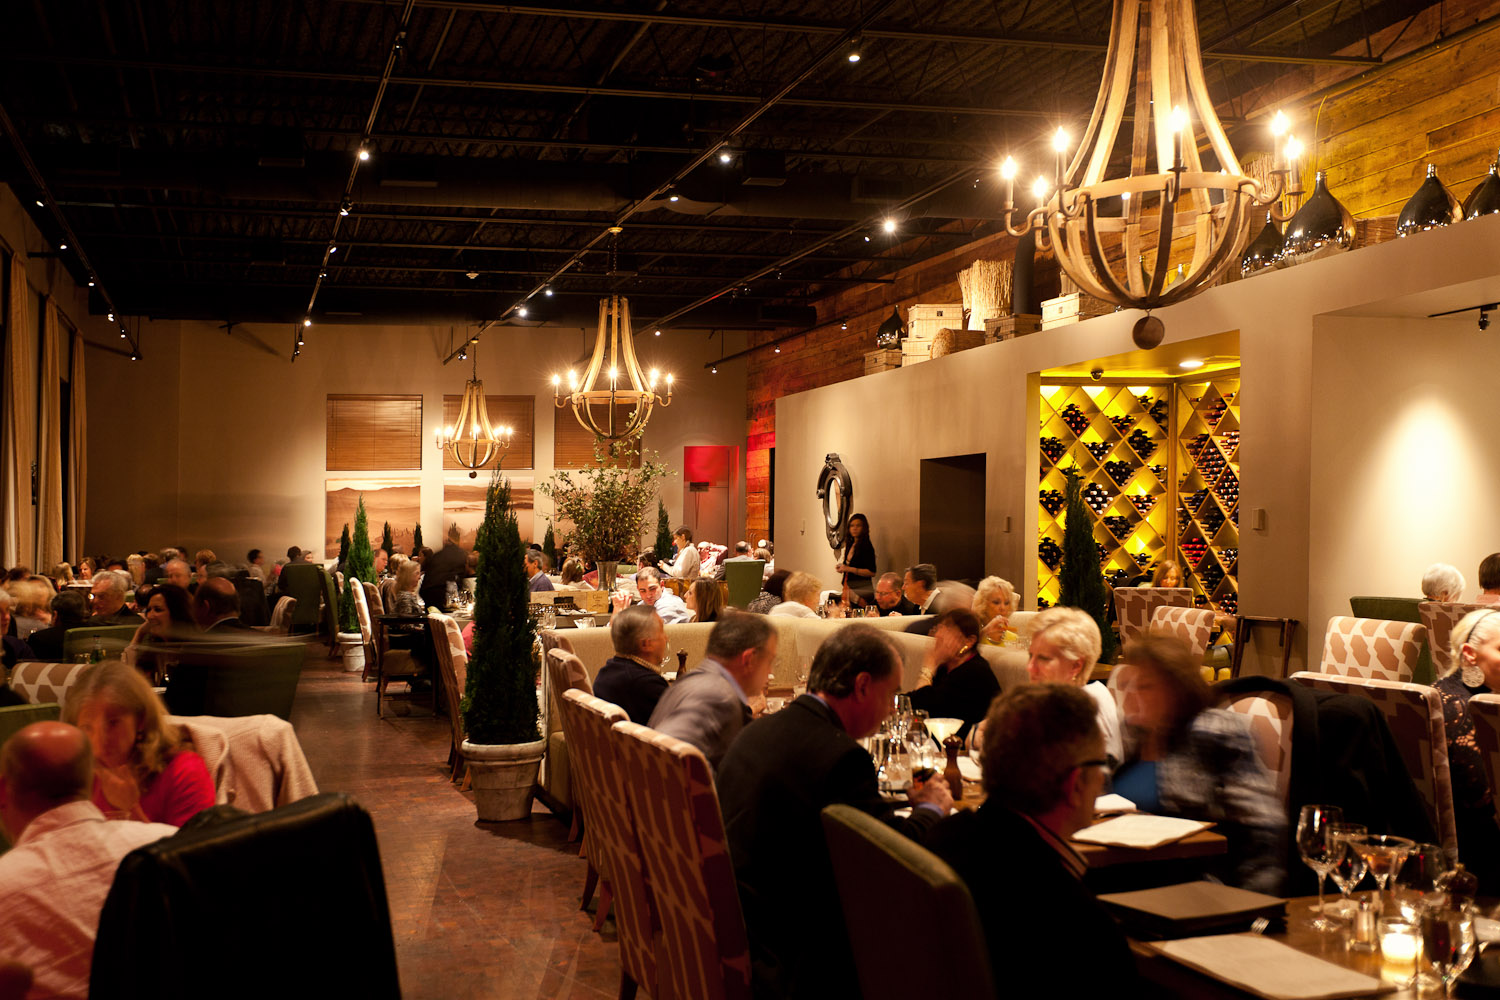 The Burgeoning Burlington Restaurant Business Global